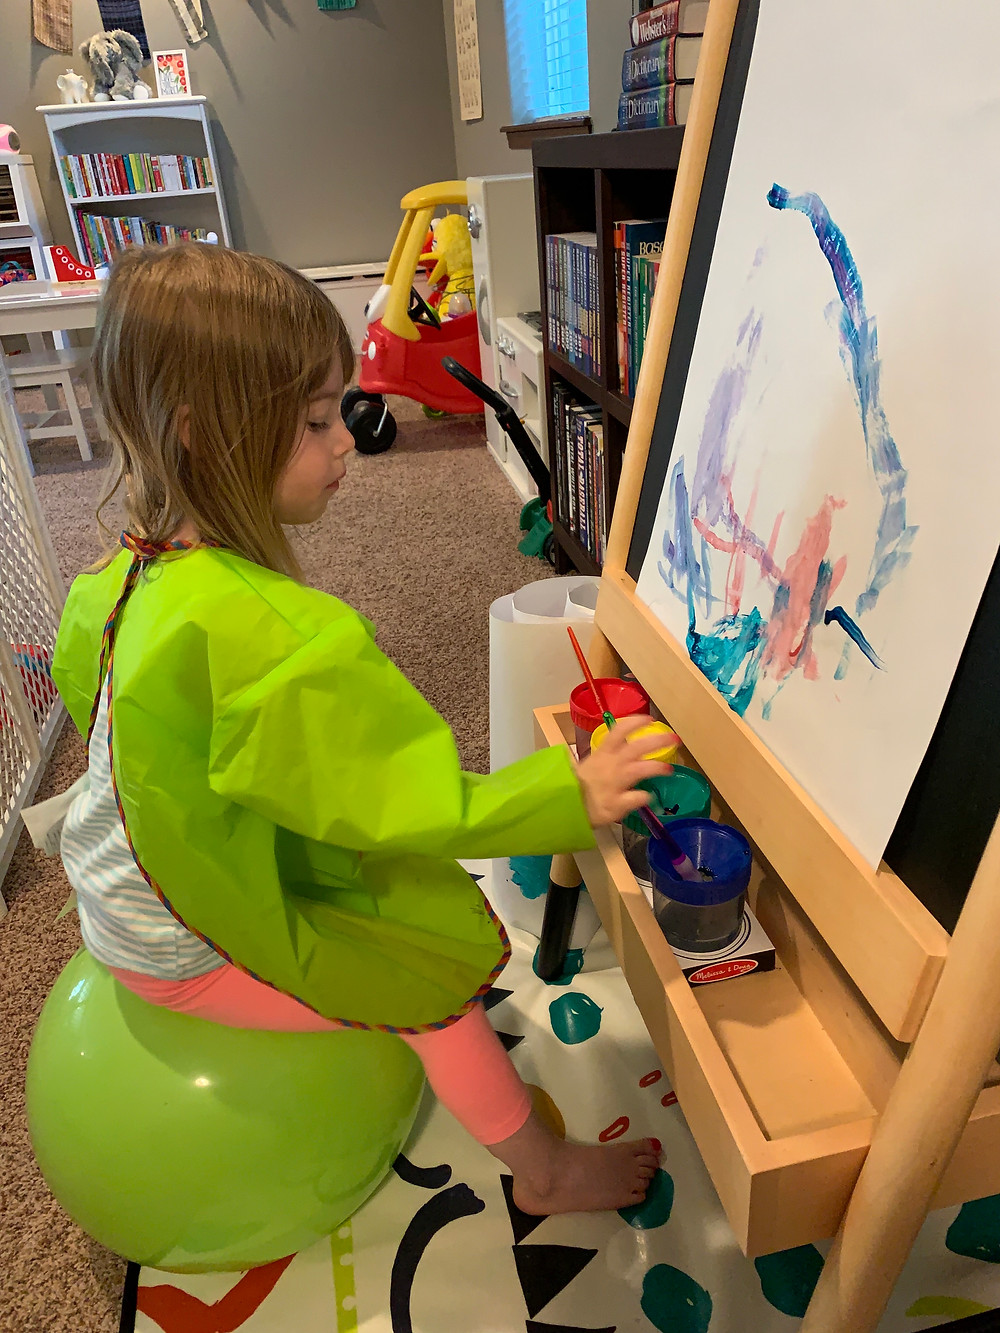 Mallory painting at her easel while I work